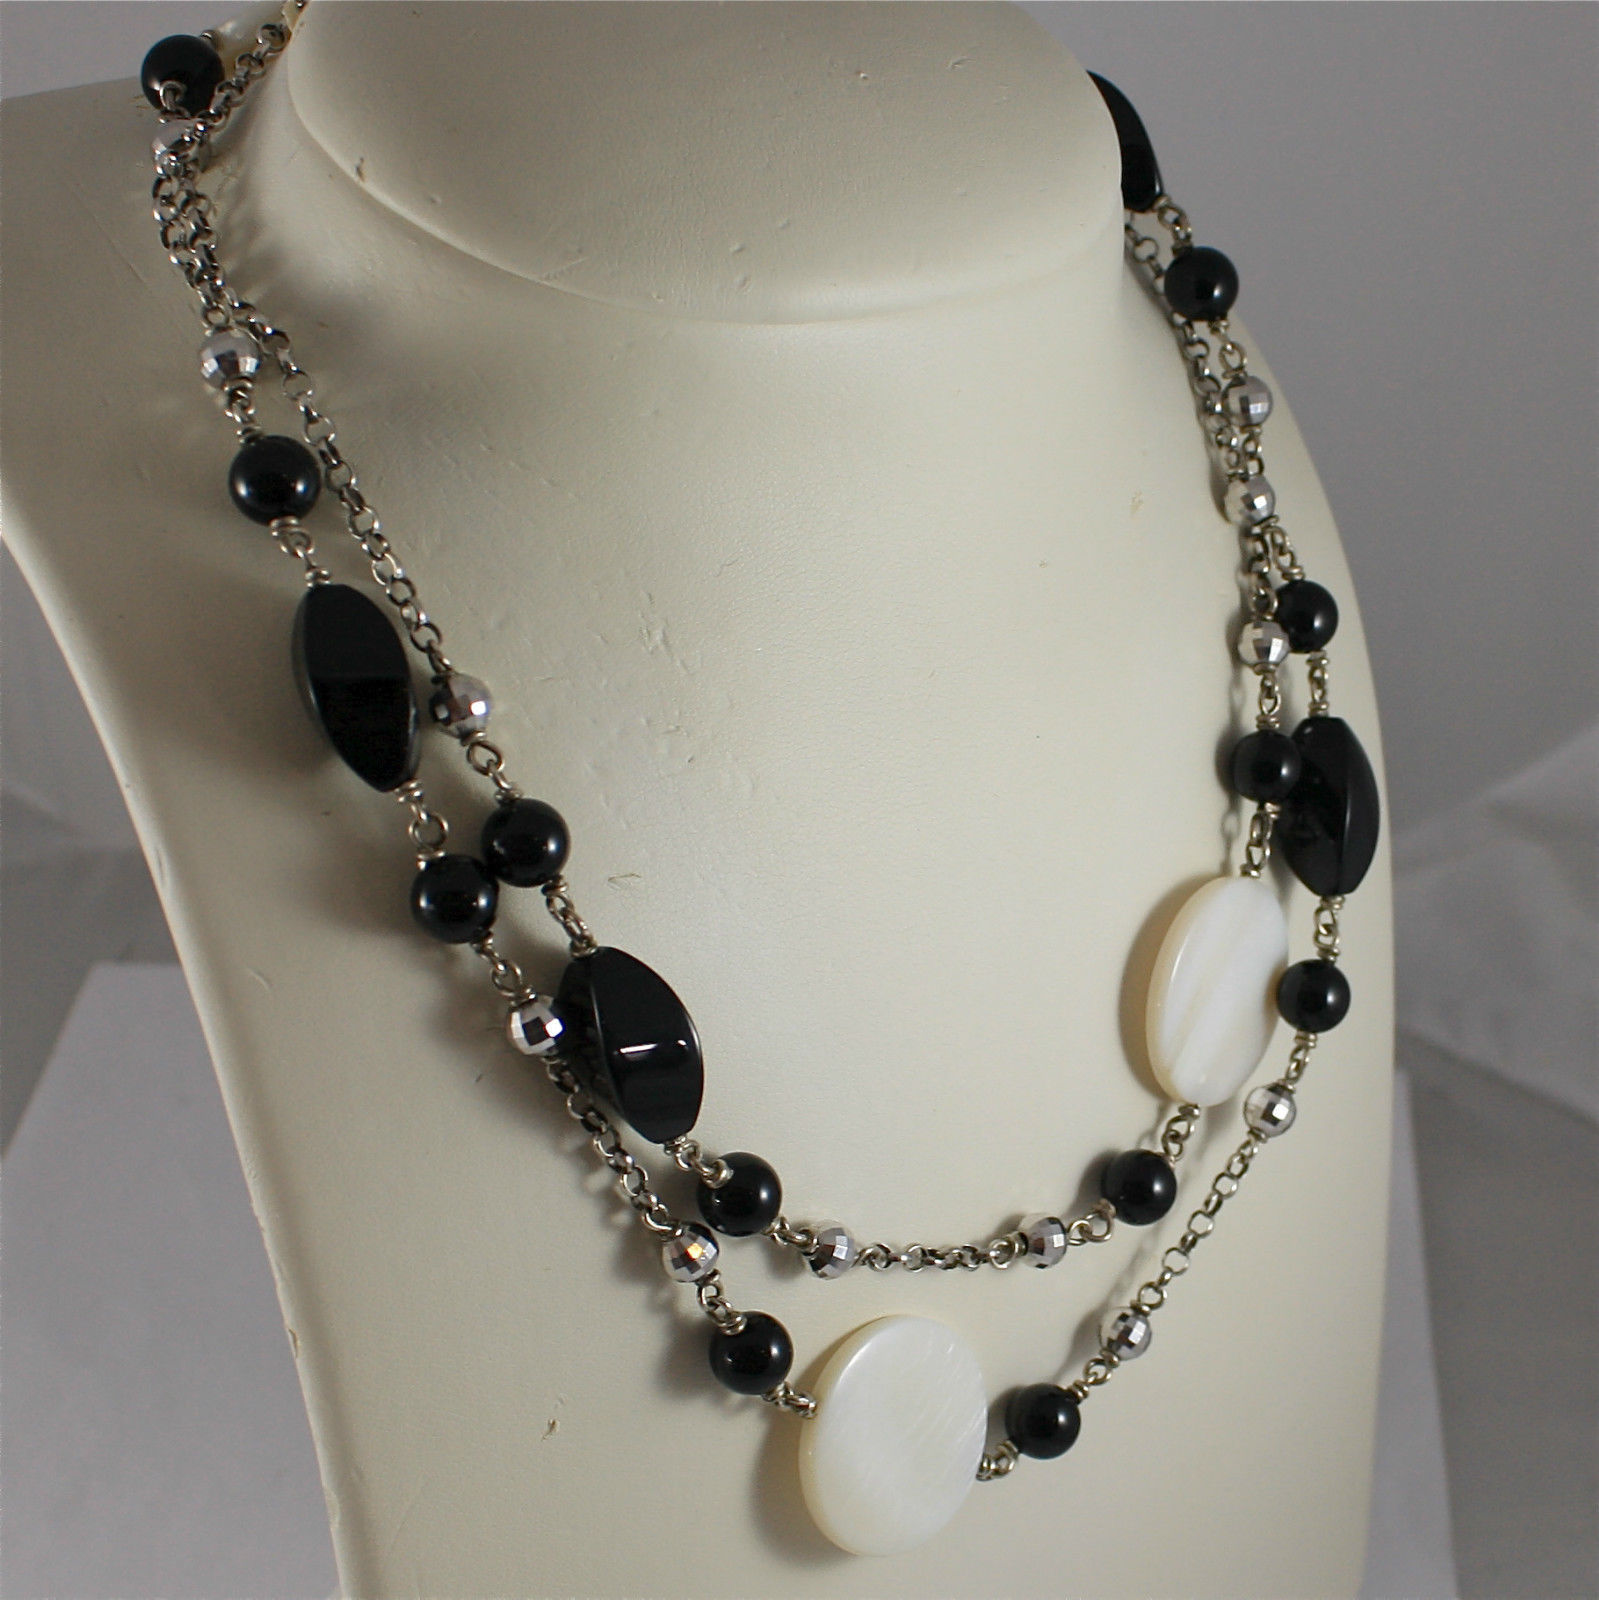 .925 RHODIUM SILVER NECKLACE, BLACK ONYX, MOTHER OF PEARL, FACETED SILVER BALLS.